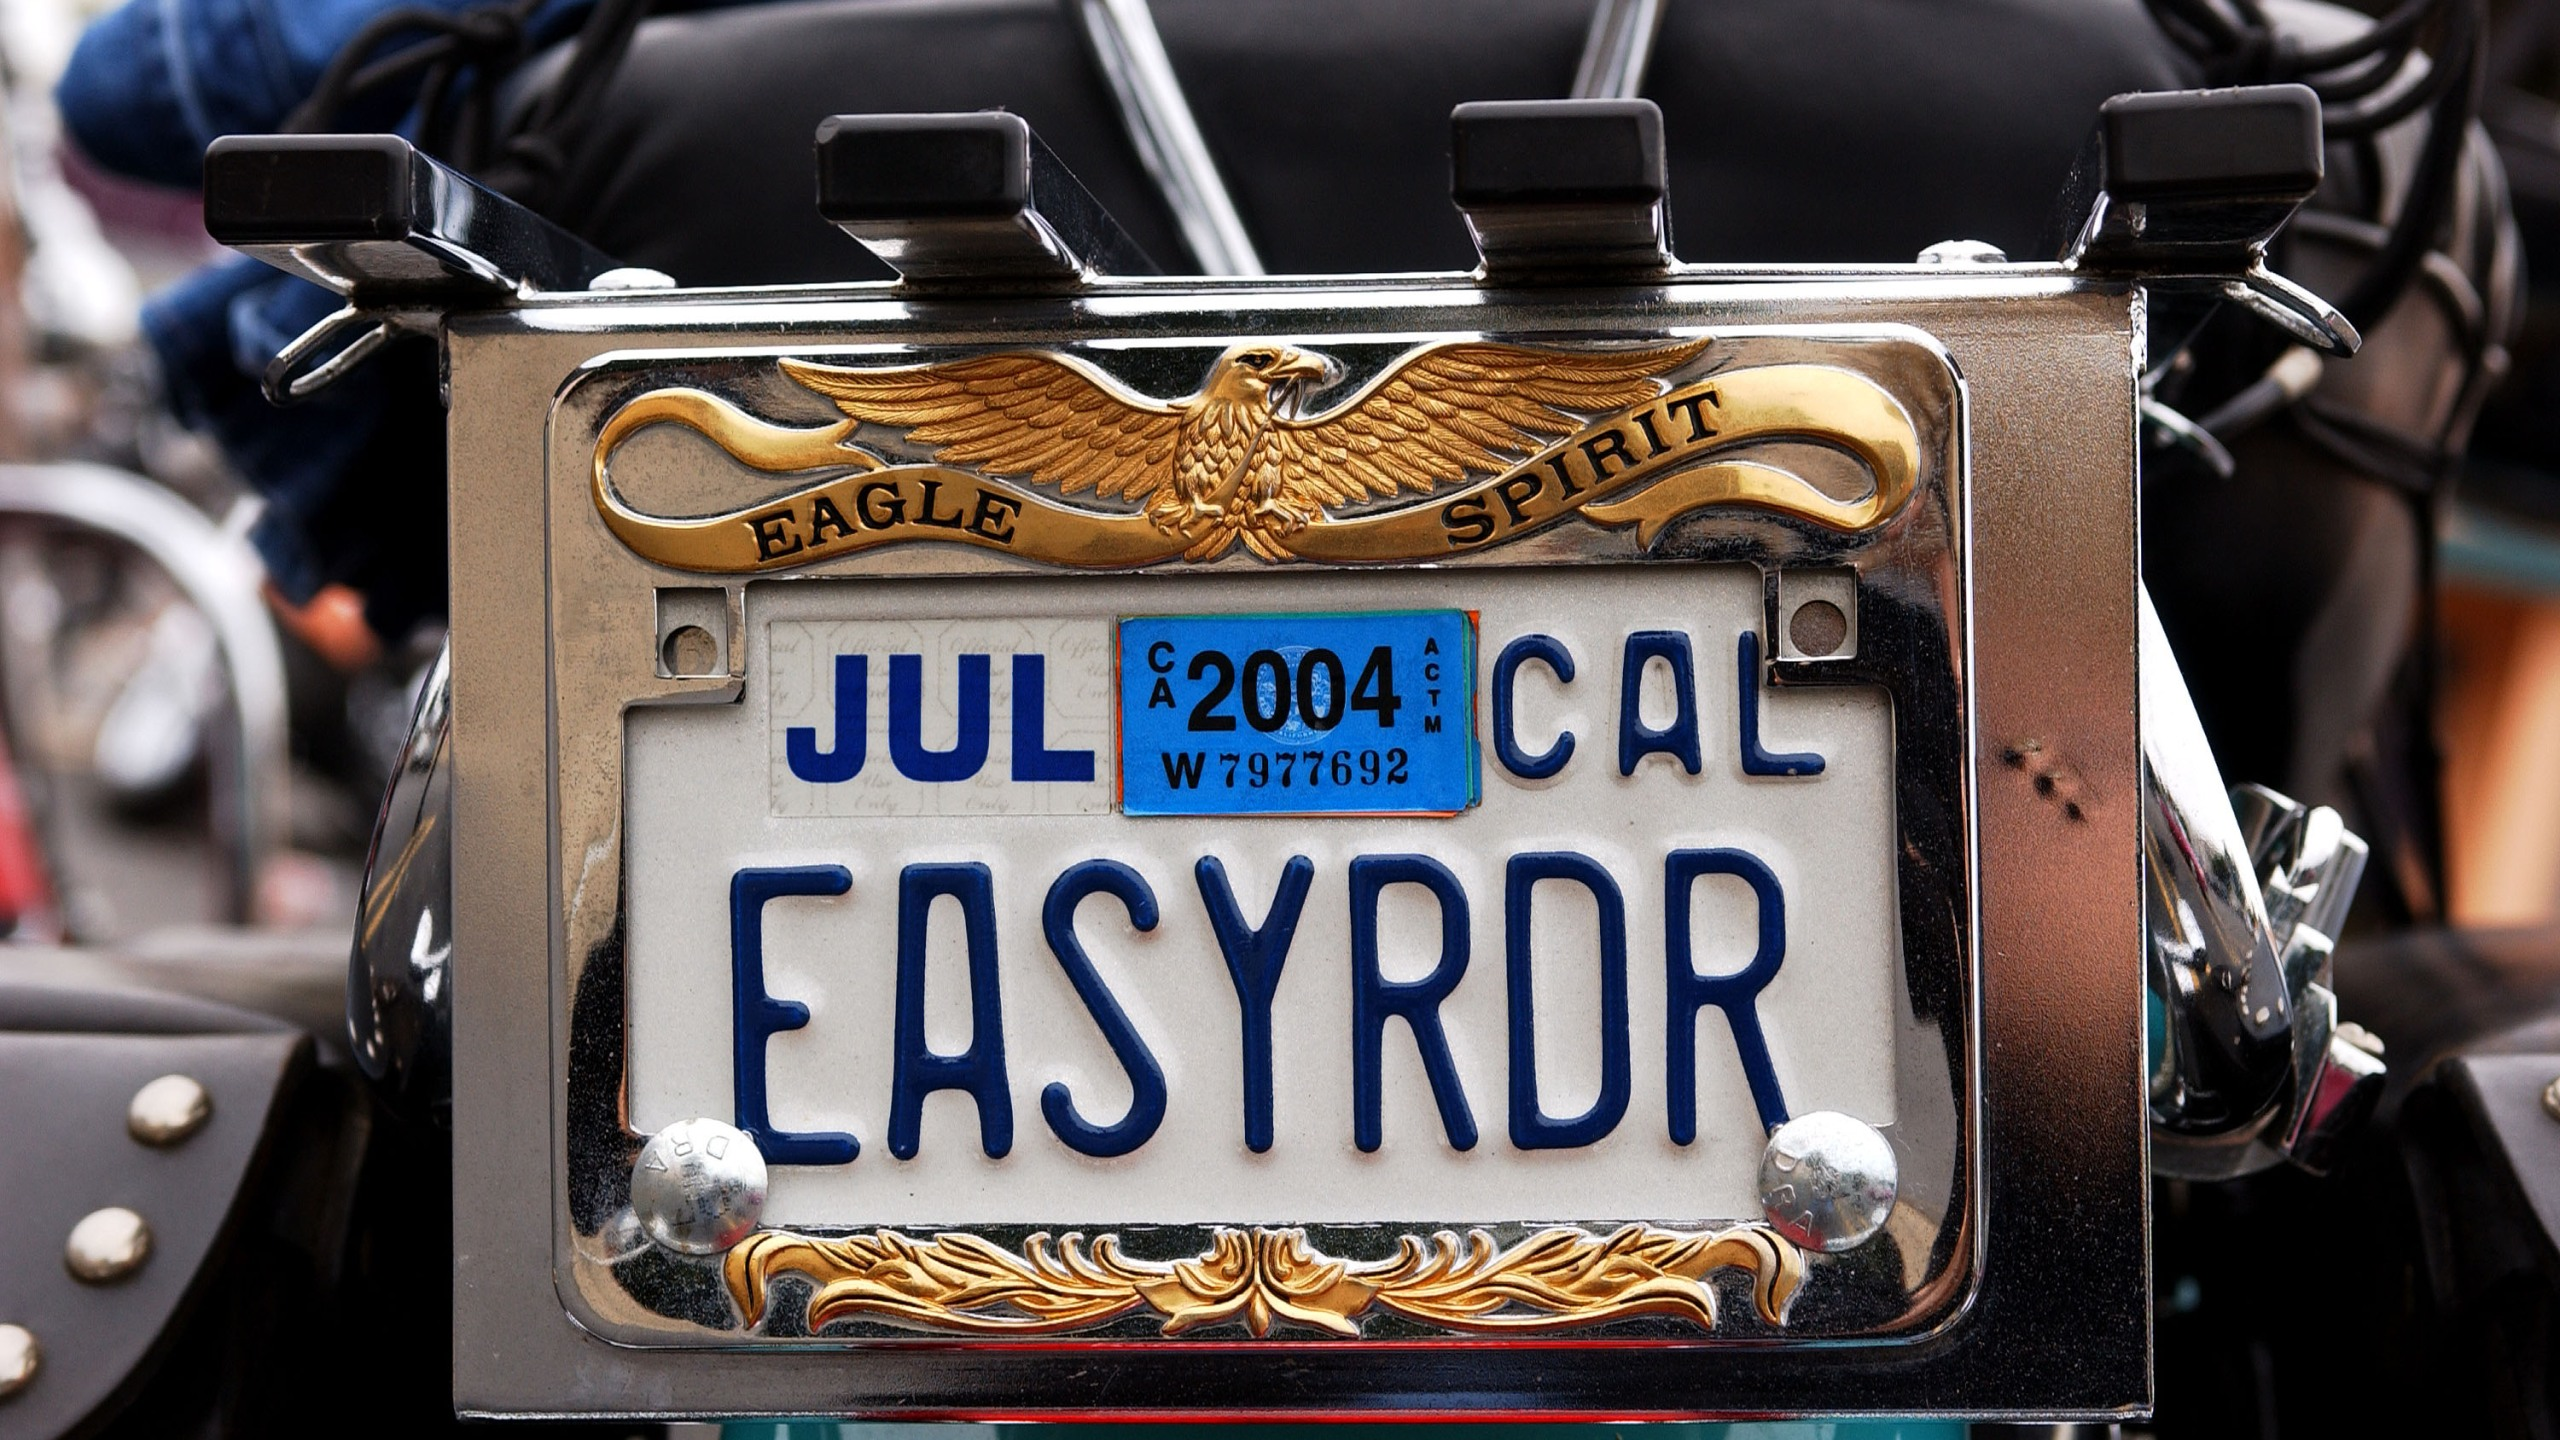 A vanity license plate sits on a Harley-Davidson motorcycle in Glendale on Nov. 9, 2003. (Credit: Amanda Edwards / Getty Images)